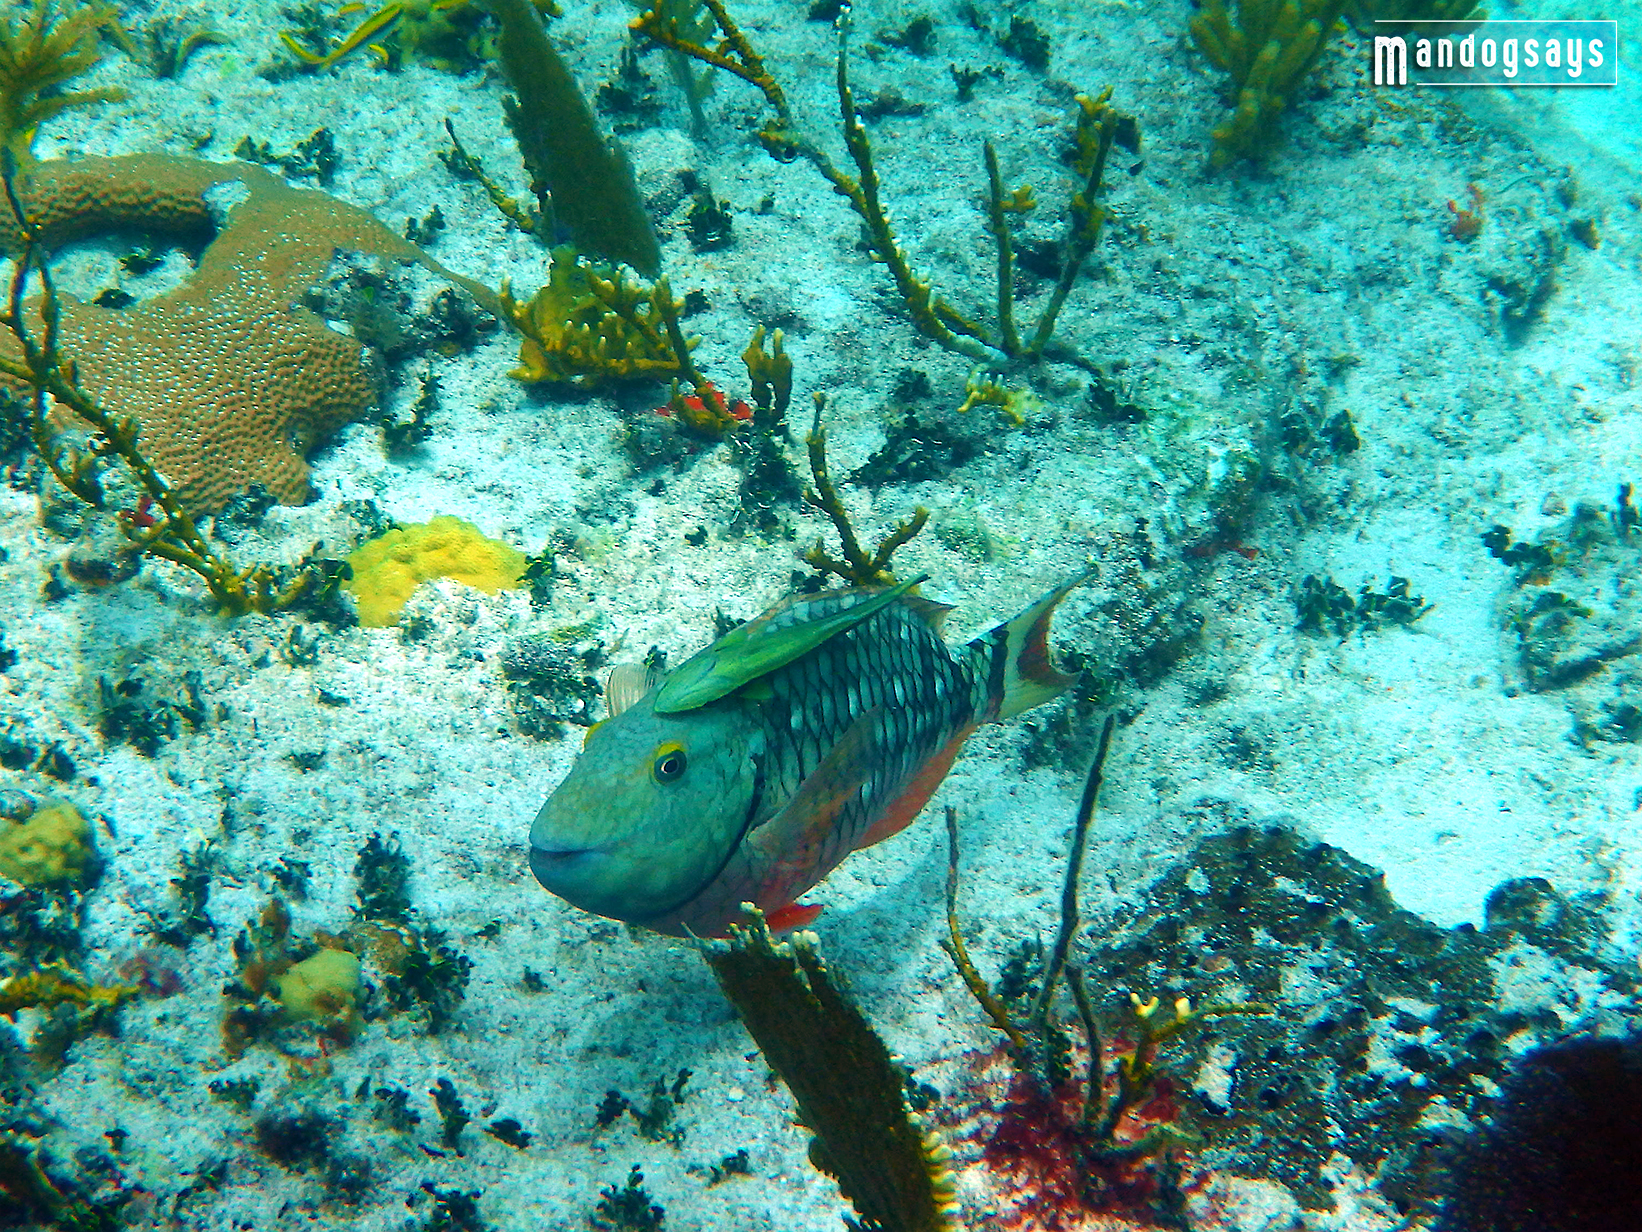 Female stoplight parrotfish with a remora attached